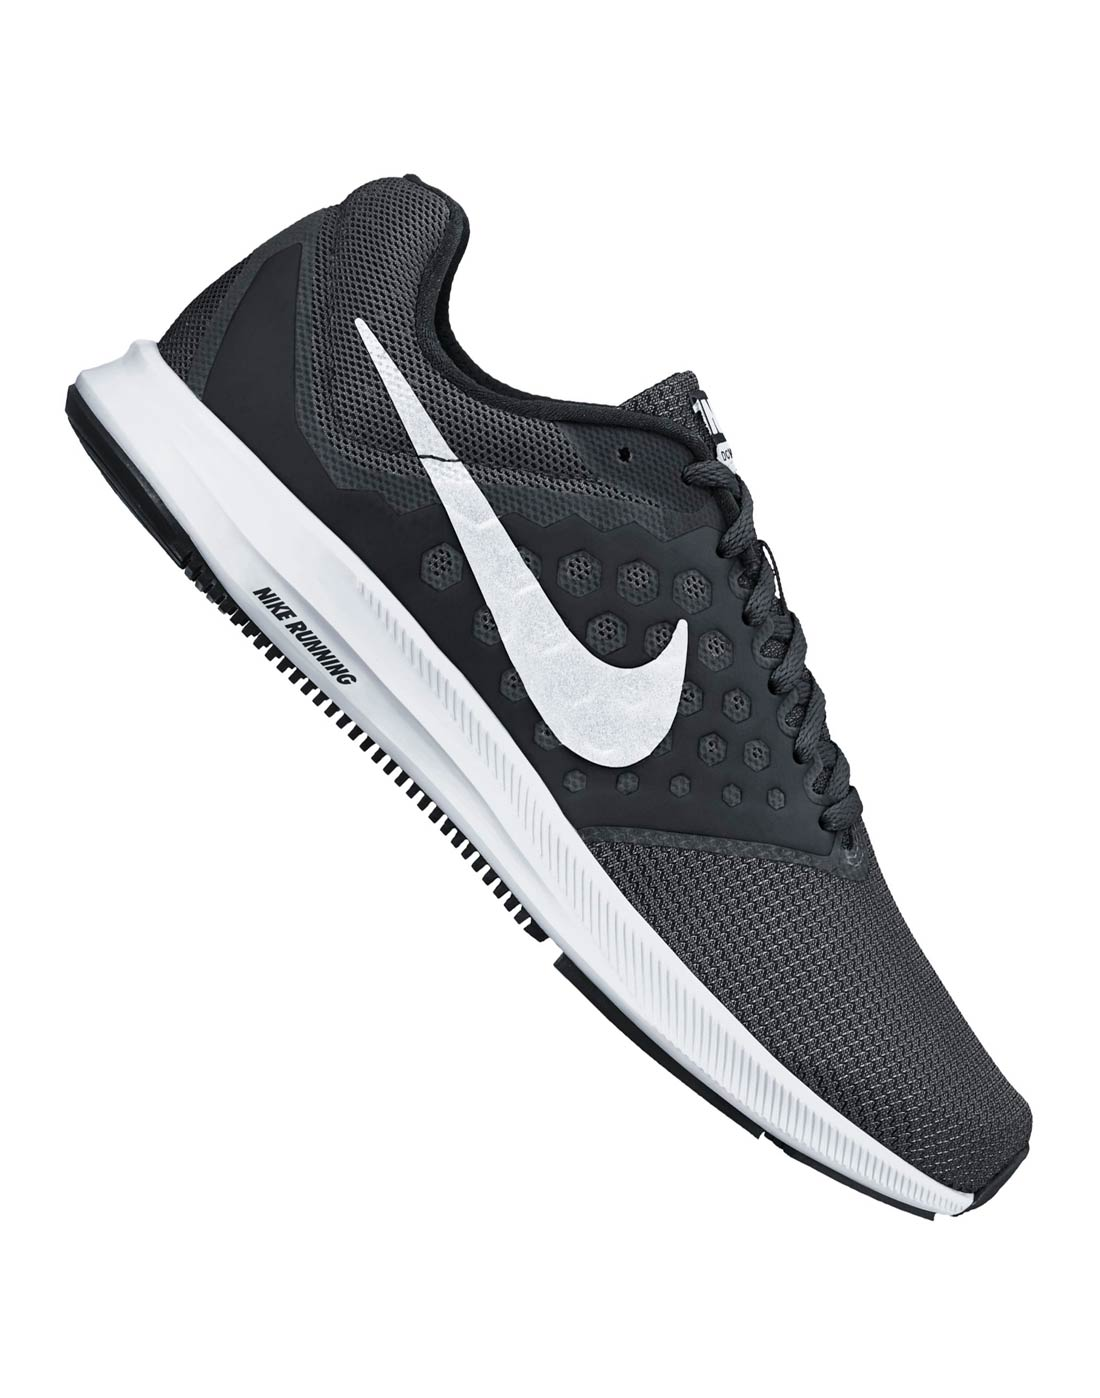 7a9240e91c16 Nike Mens Downshifter 7